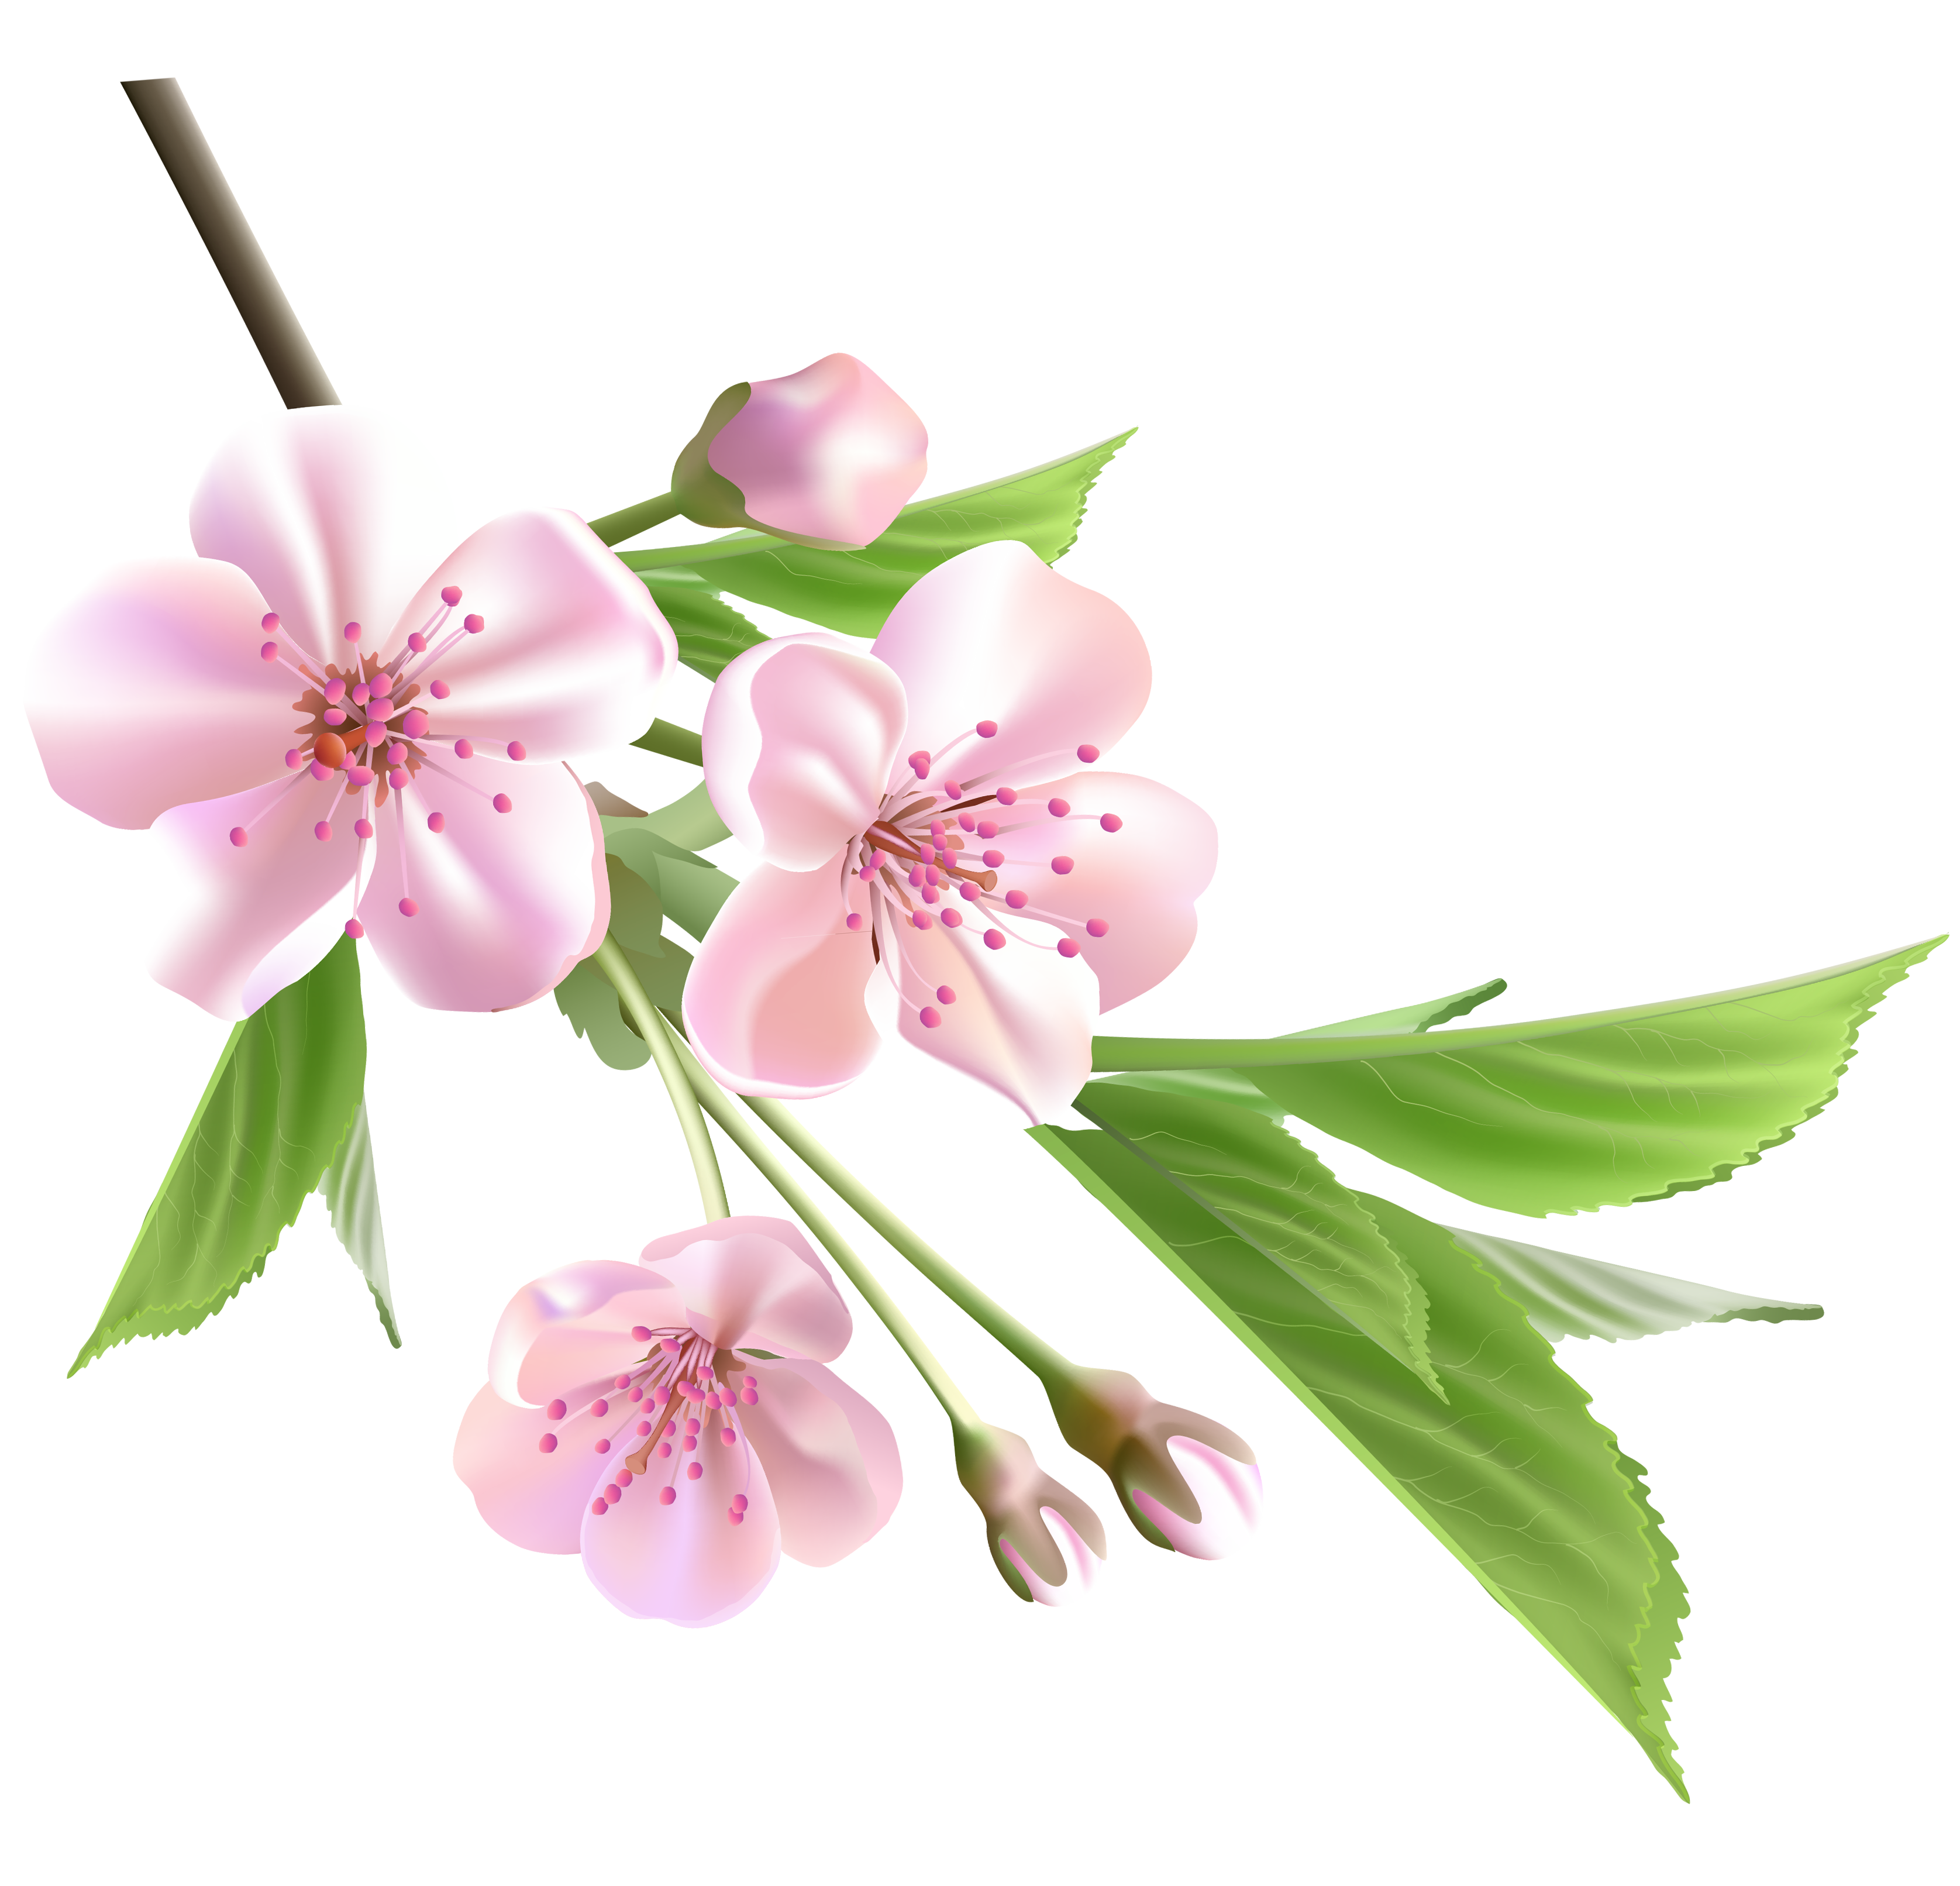 Spring flower png. Branch with pink tree